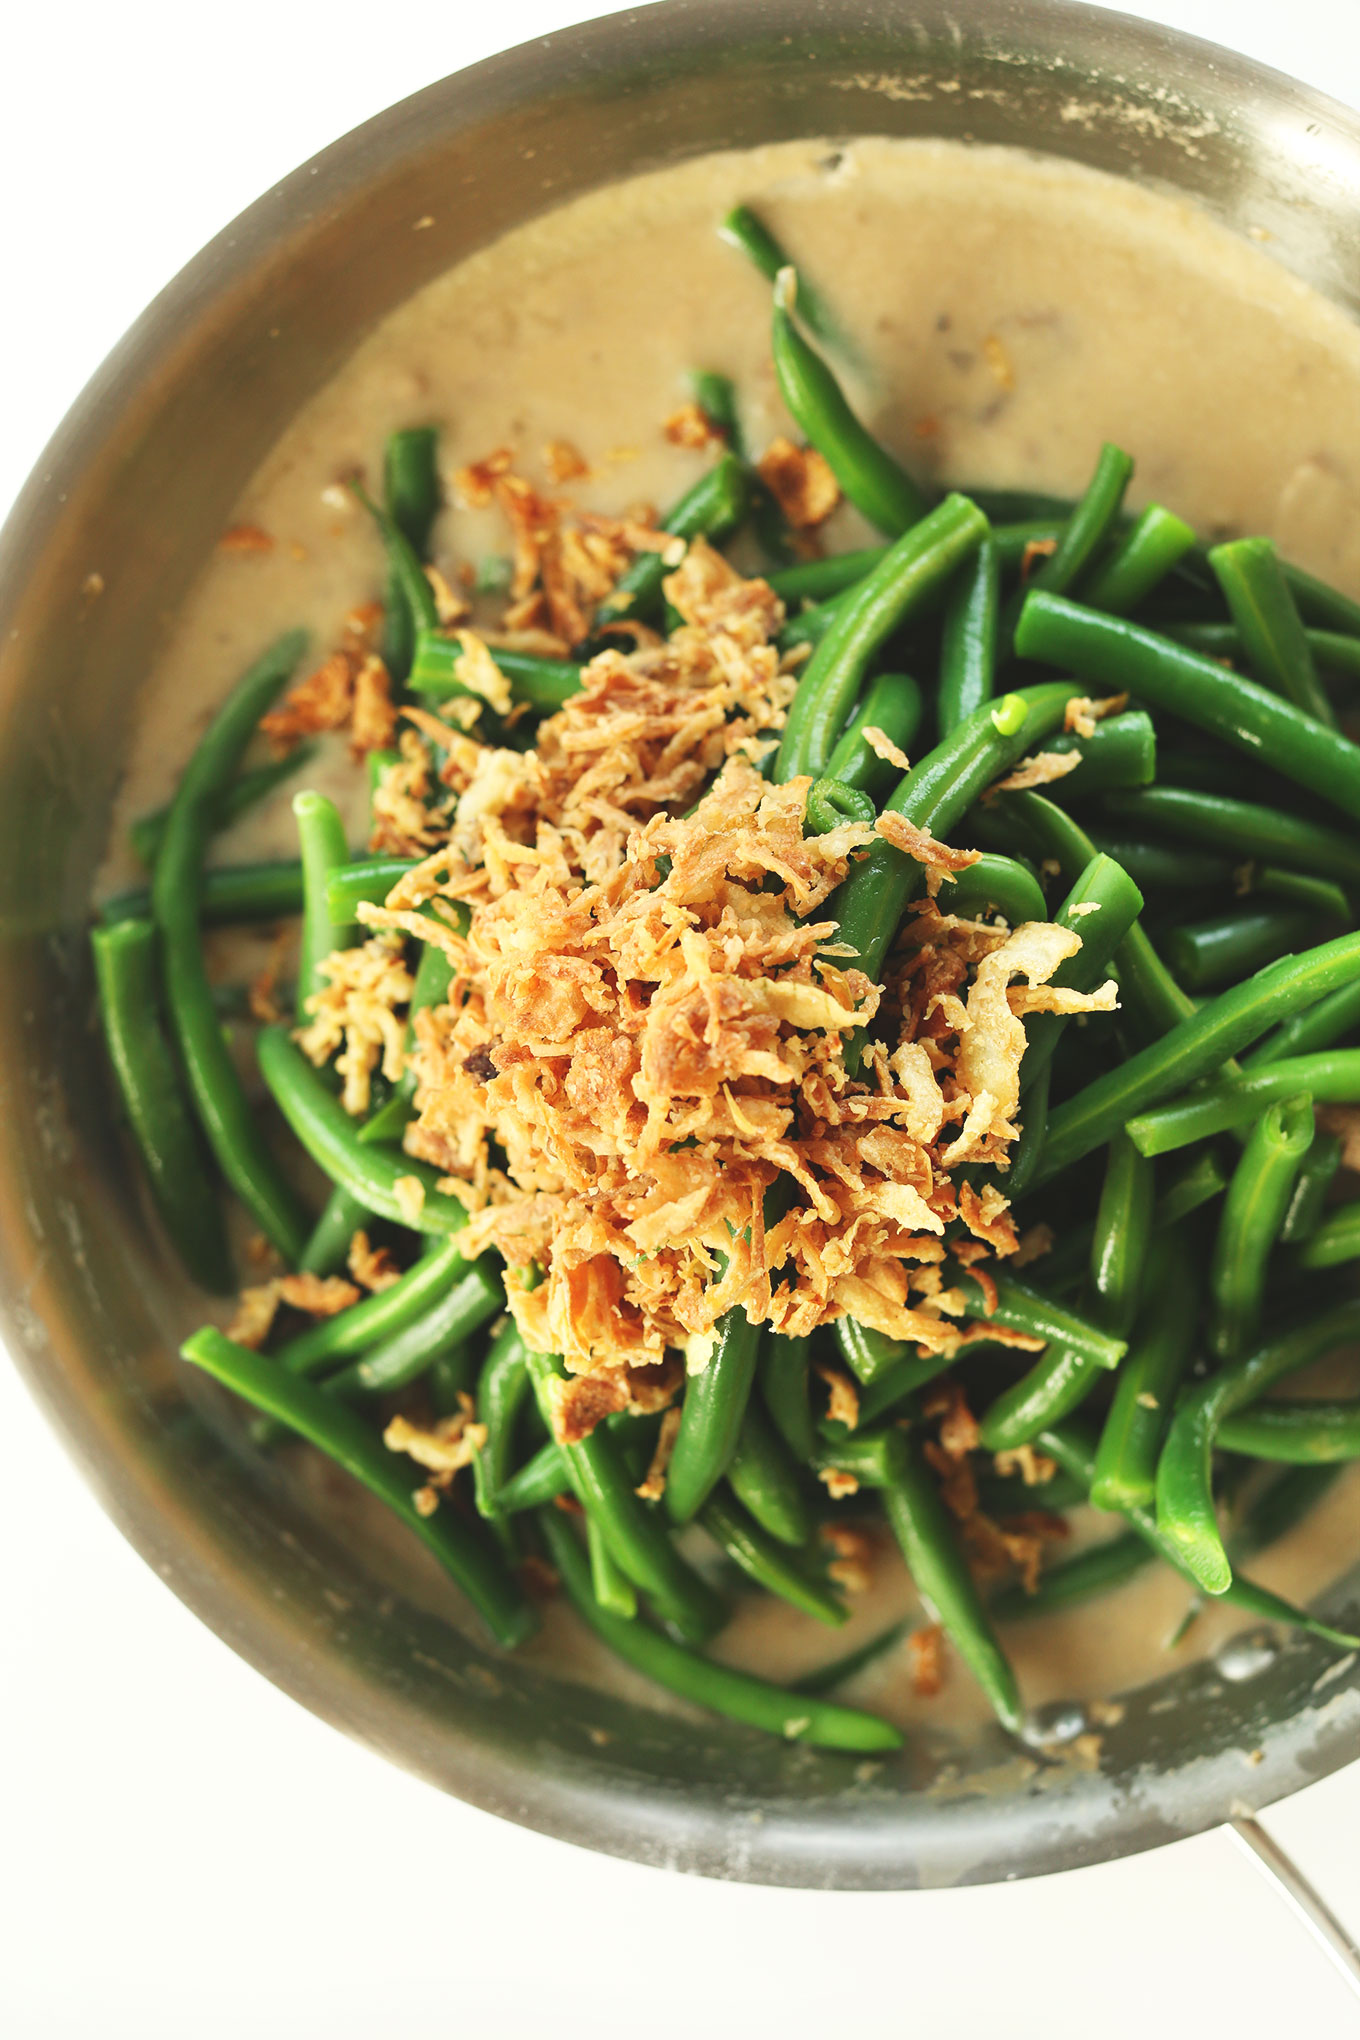 Pan filled with our vegan Green Bean Casserole recipe